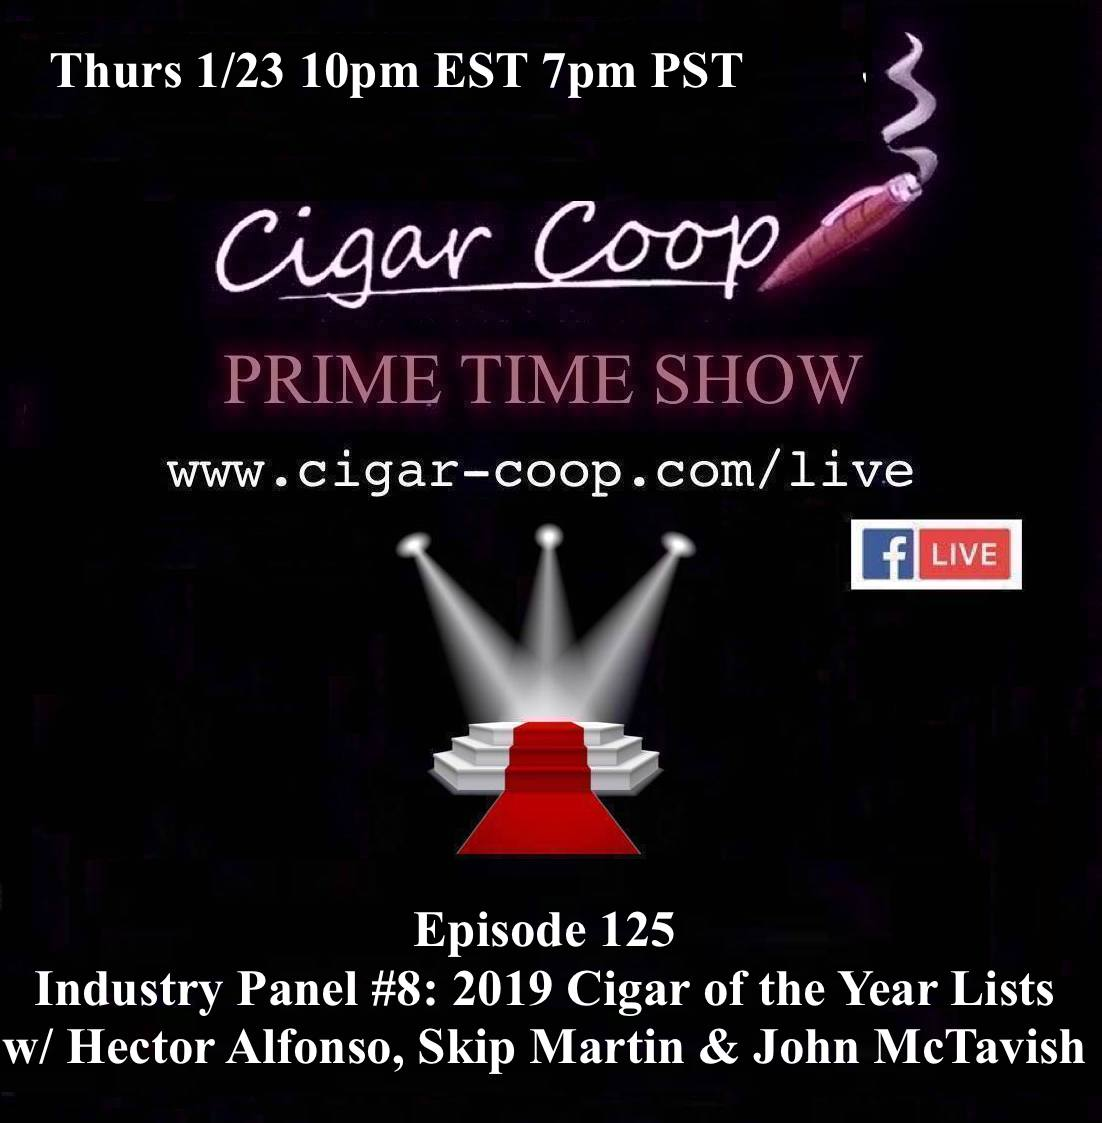 Announcement: Prime Time Episode 125 – Industry Panel #8: 2019 Cigar of the Year Lists